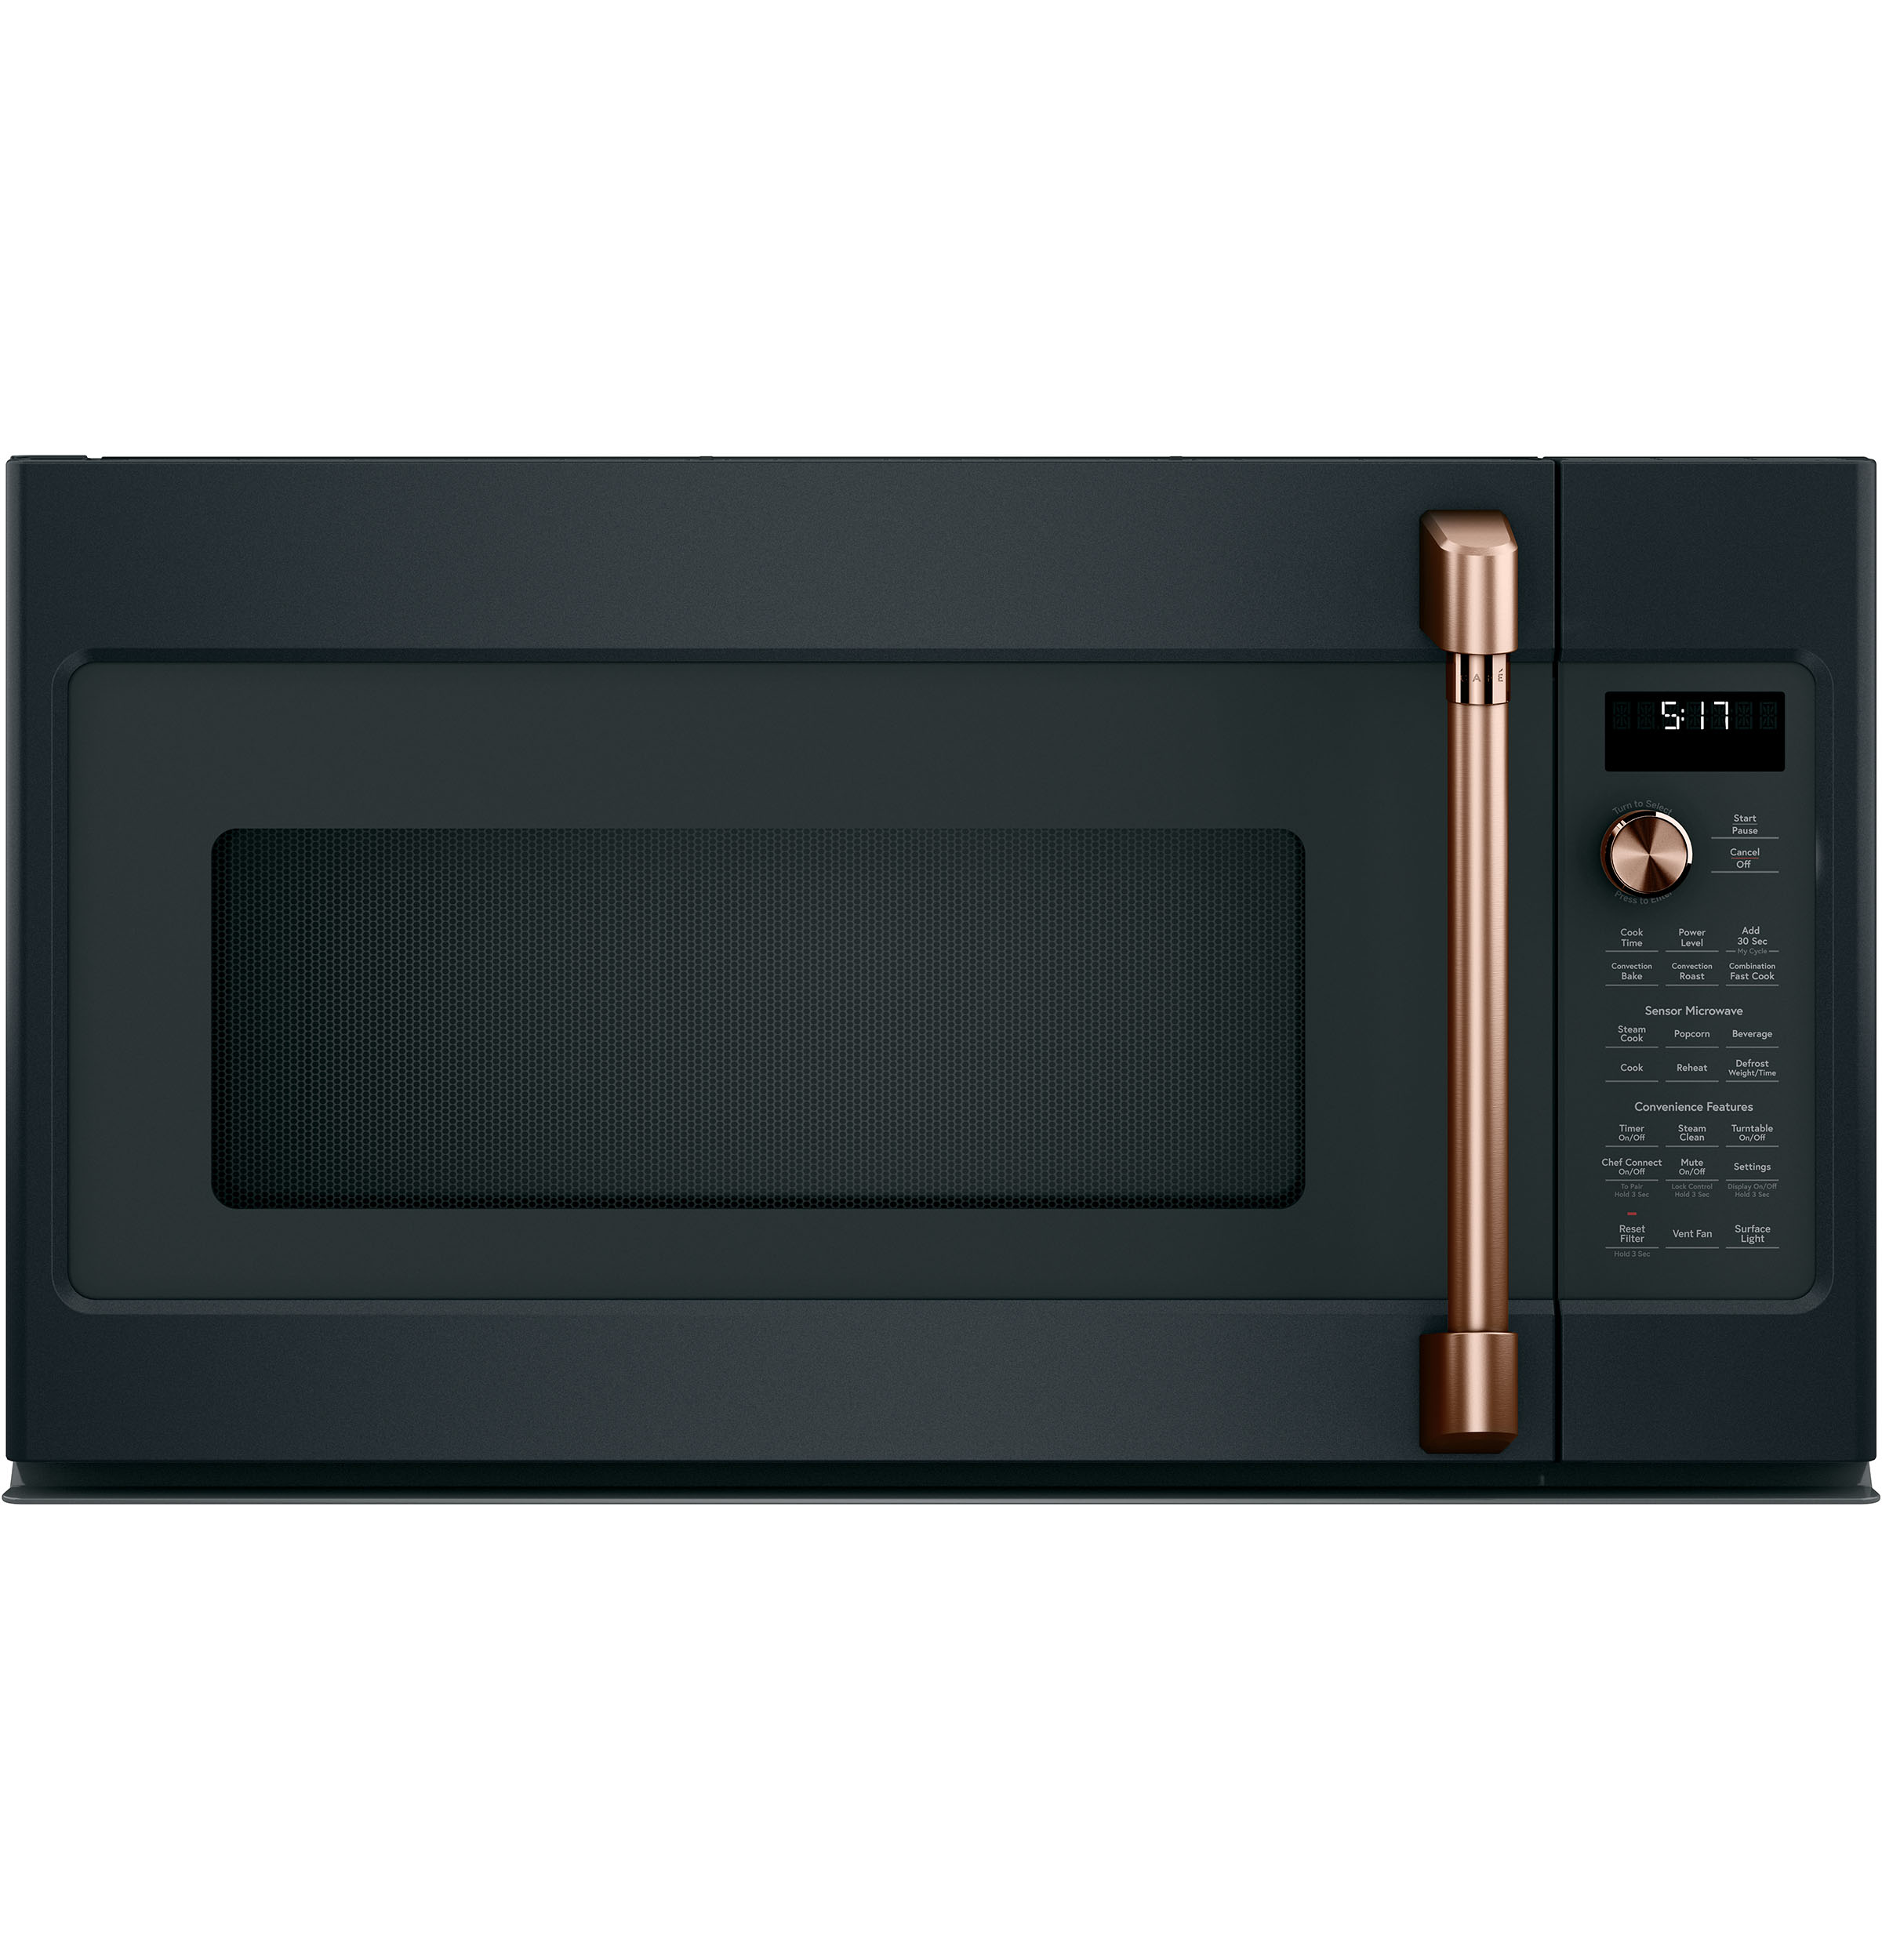 Model: CVM517P3MD1 | Café™ 1.7 Cu. Ft. Convection Over-the-Range Microwave Oven